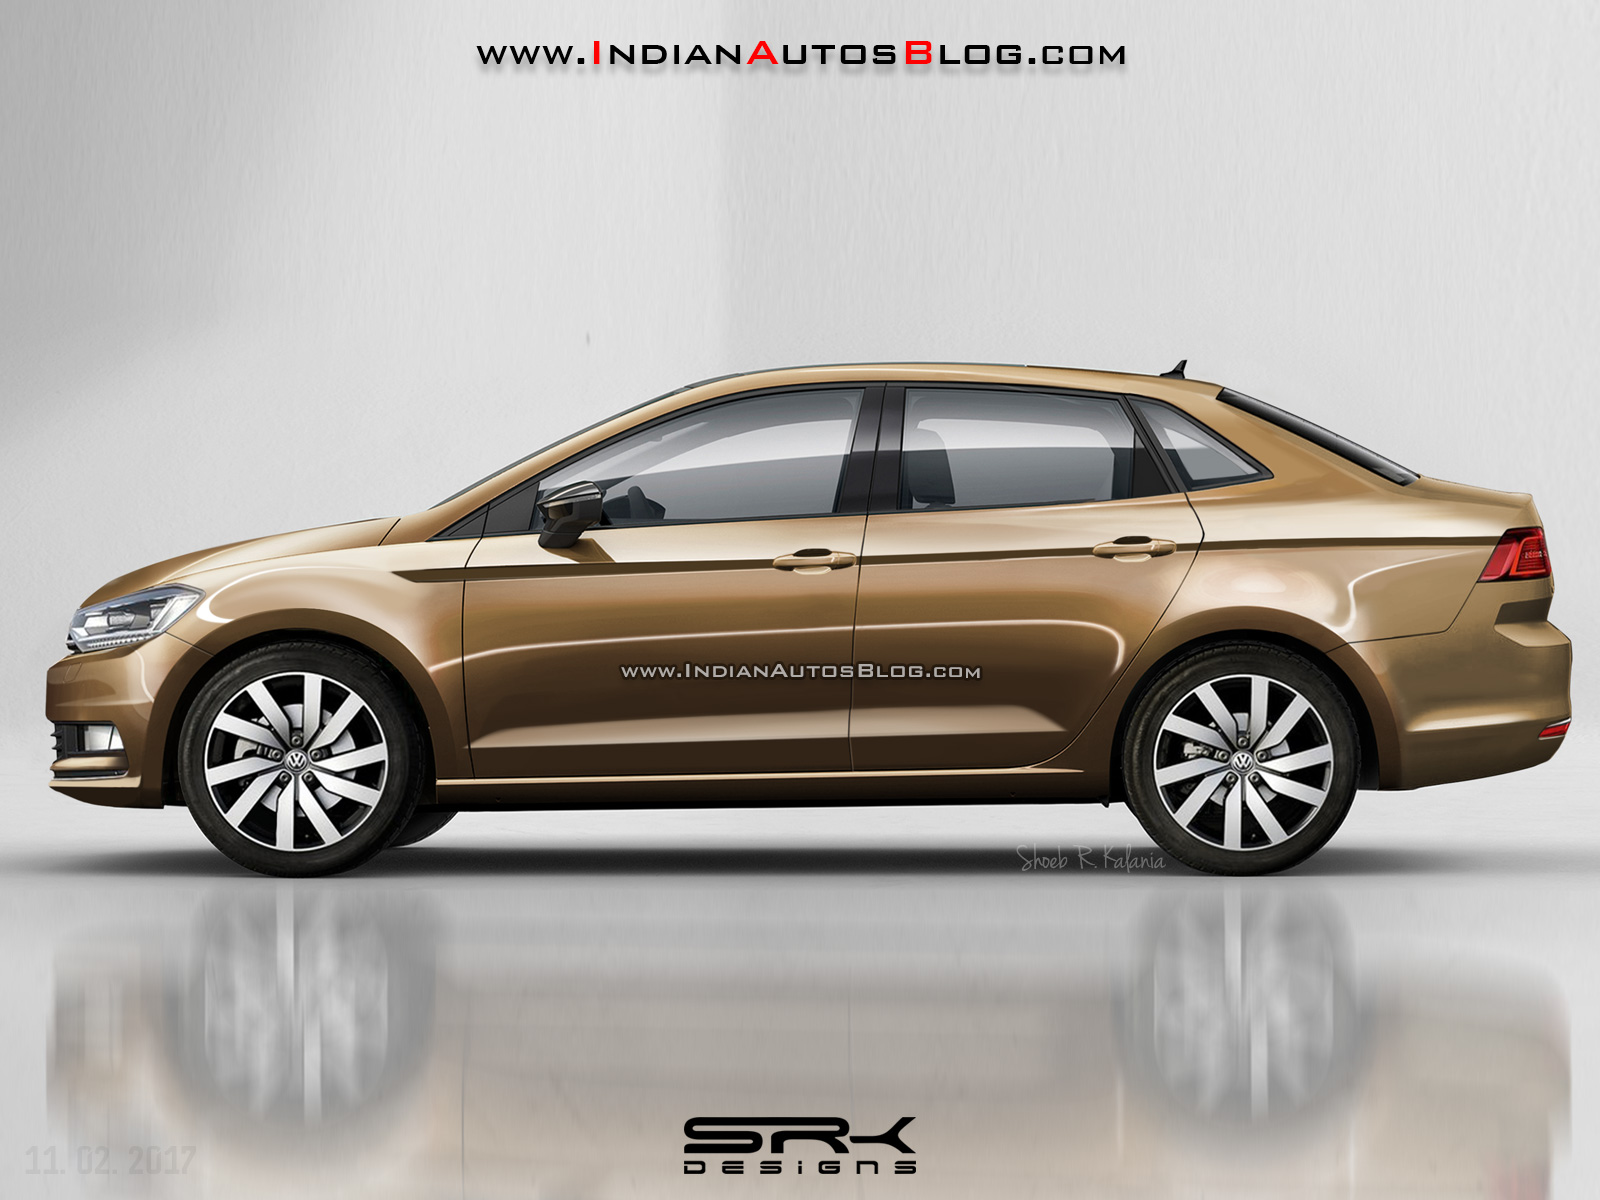 2018 VW Vento (2018 VW Polo Sedan) - Rendering